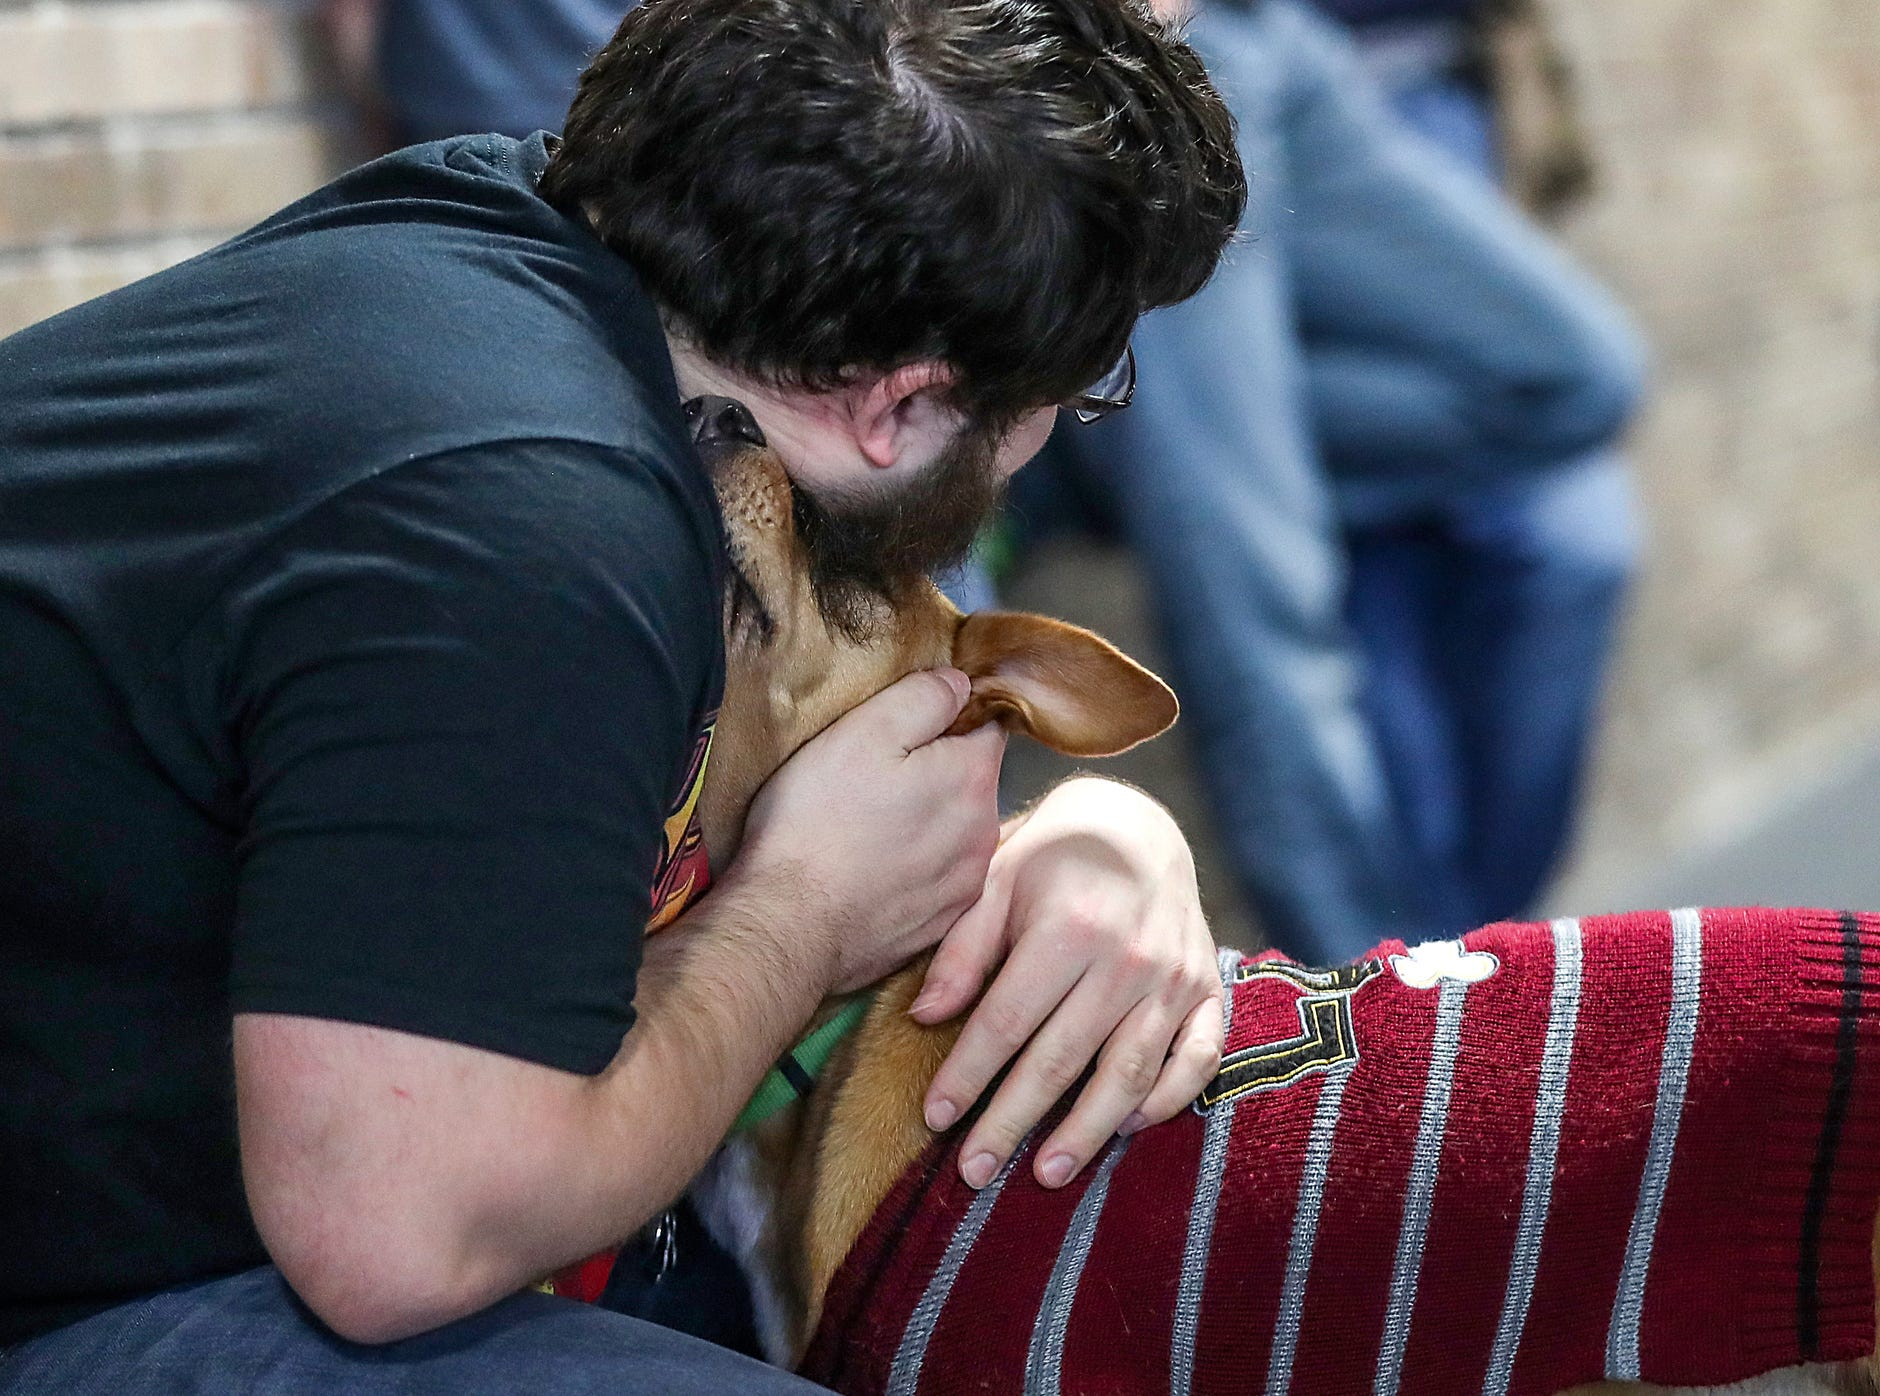 Owner Alex Toll hugs his dog Layla during the grand opening of Indy's Indoor Bark Park in Indianapolis, Saturday, Jan, 5, 2019. The large indoor space offers owners a place to exercise their dogs regardless of the weather. Membership options include single-day, multi-day and annual passes.